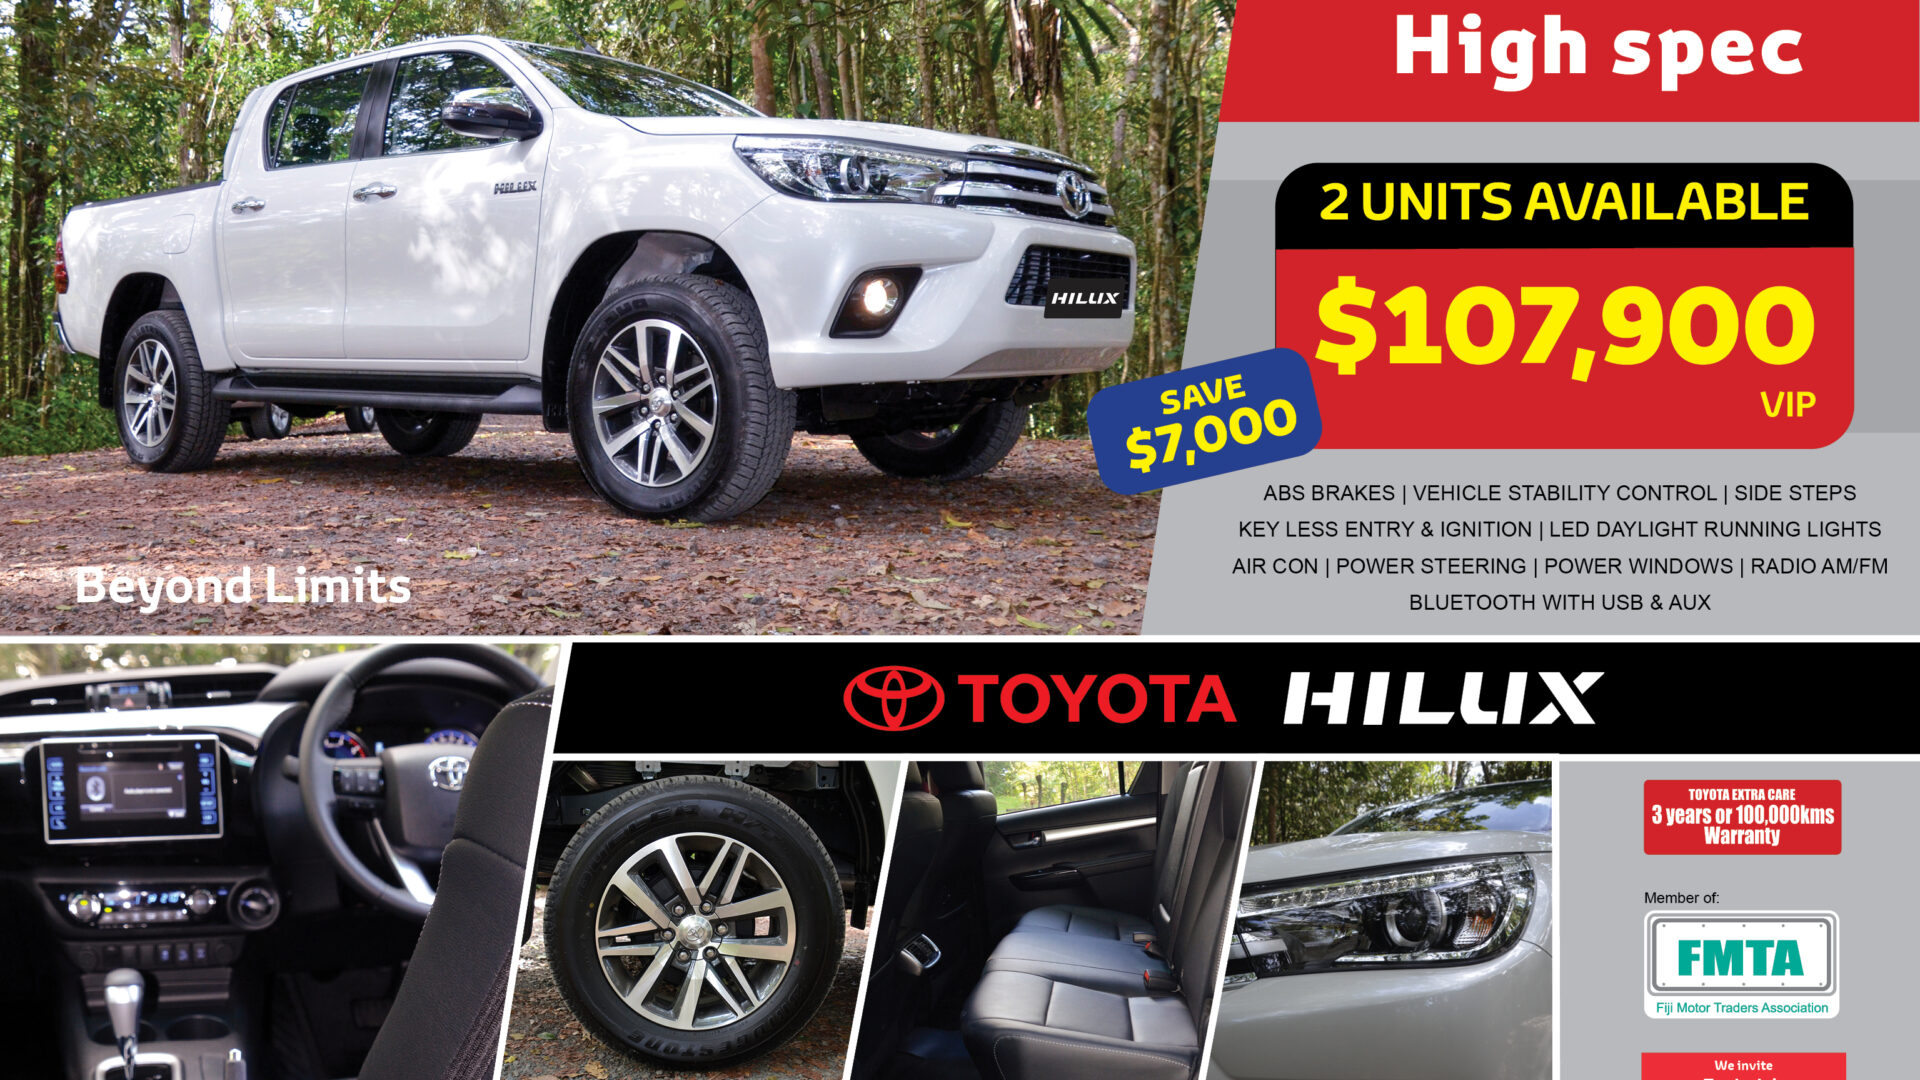 Toyota-Hilux-2.8high-spec